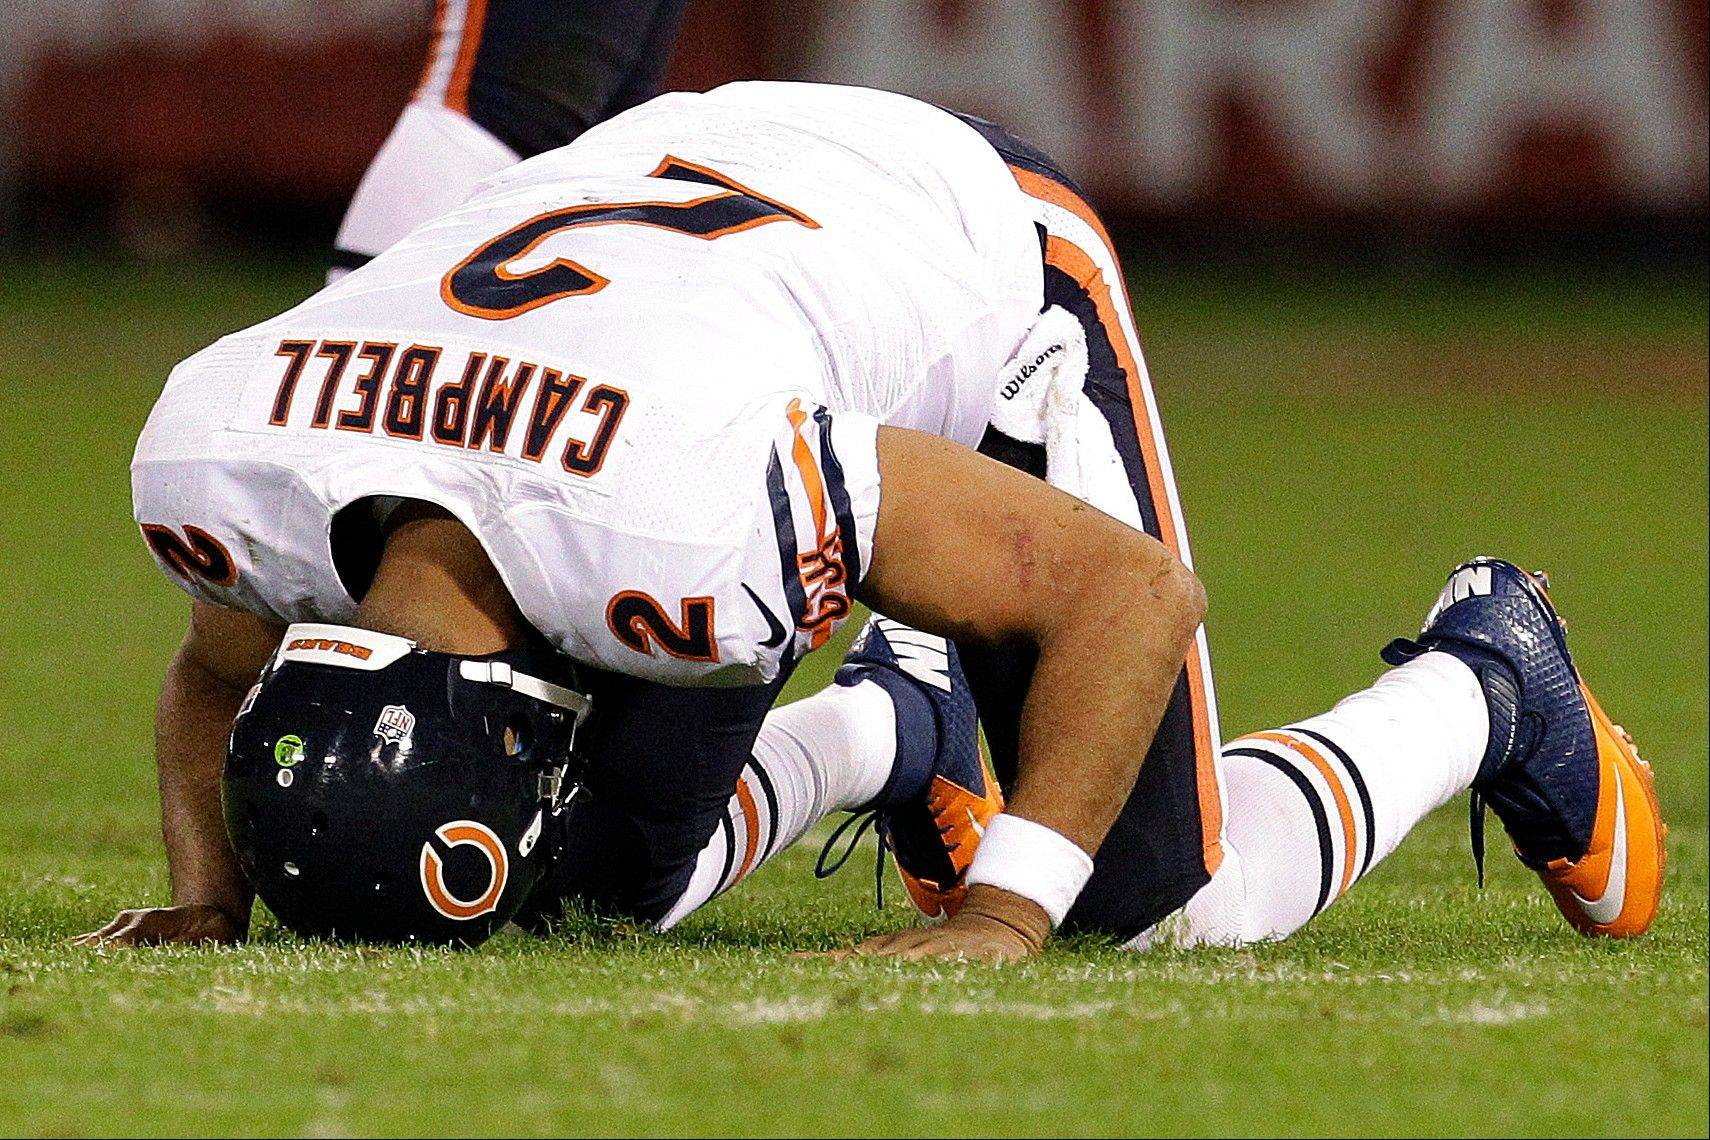 Bears quarterback Jason Campbell gets off the ground after being tackled in Monday's second half in San Francisco.